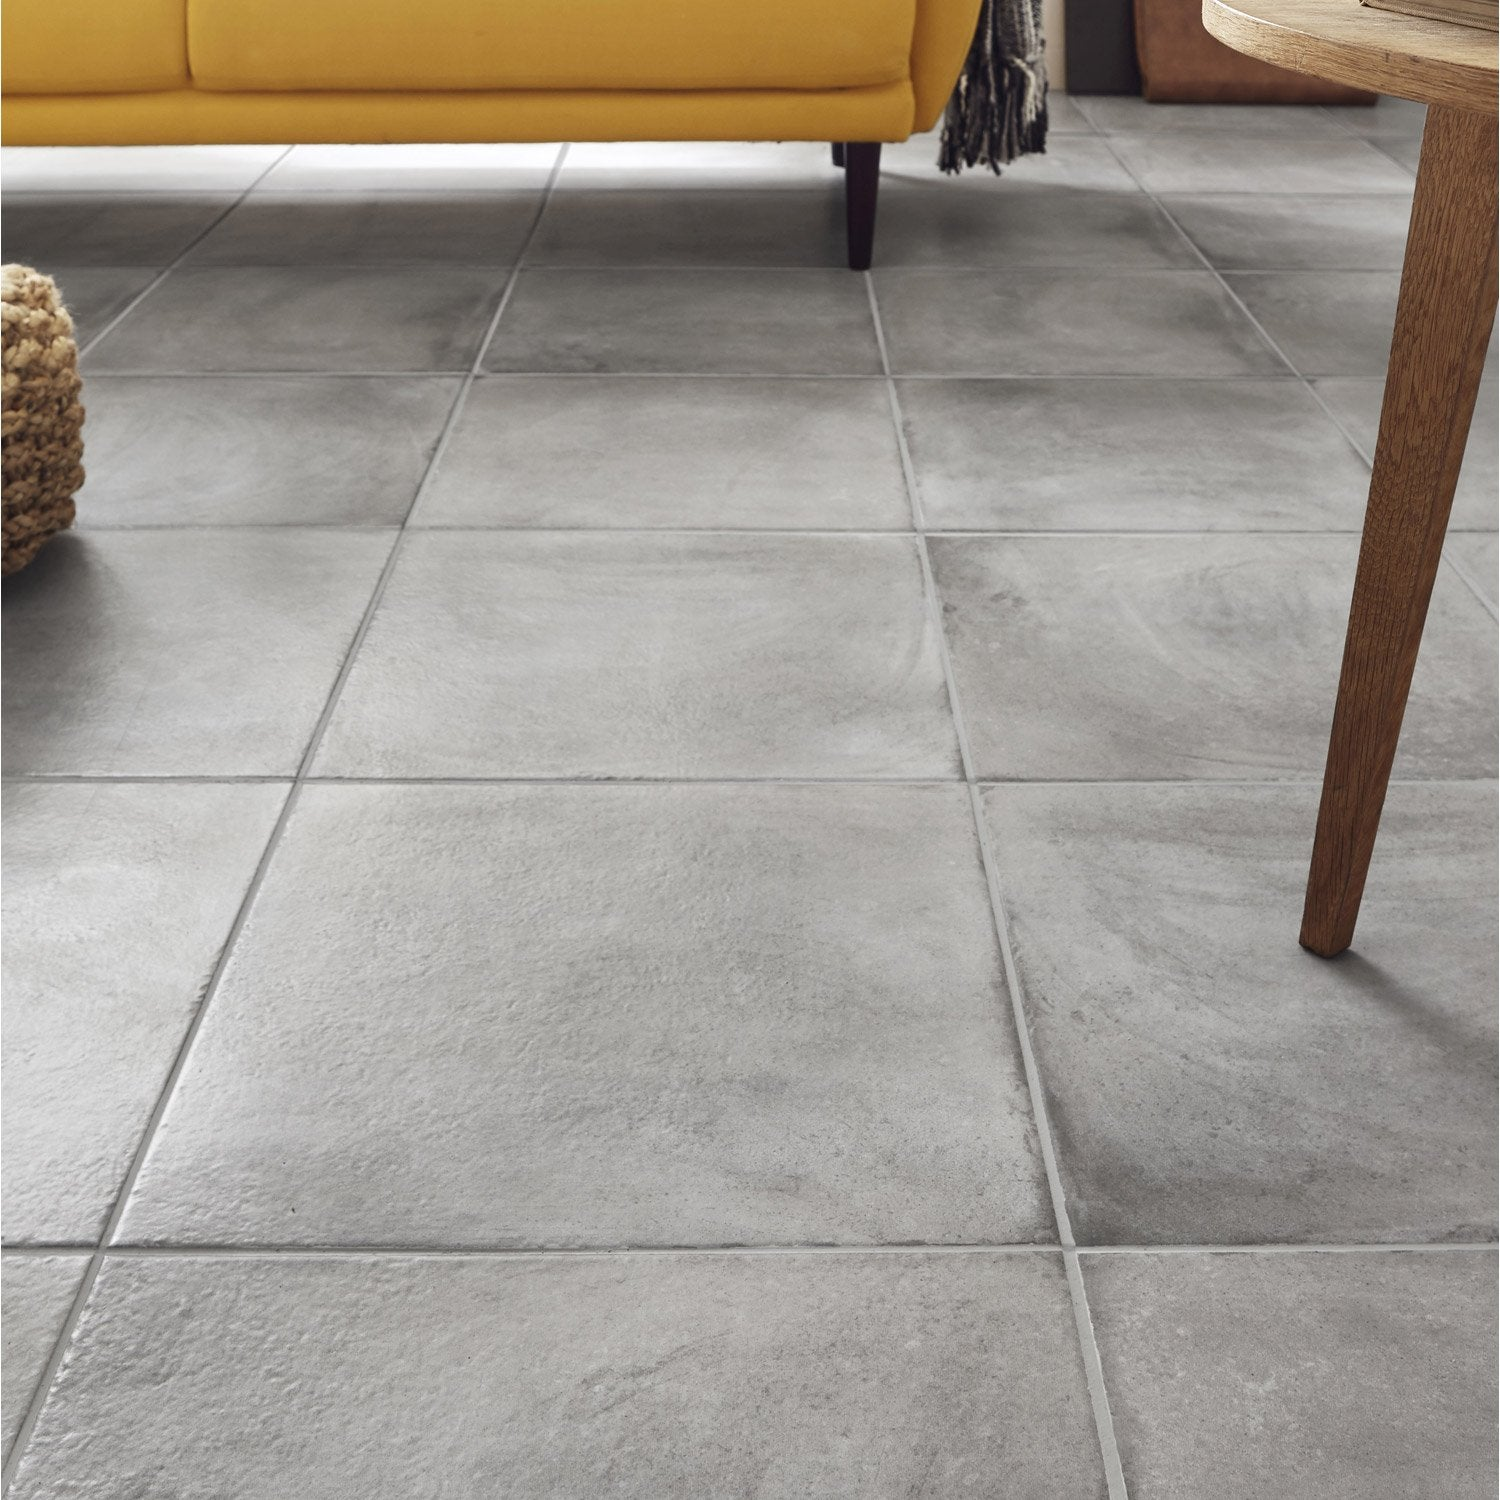 Carrelage sol gris effet b ton x cm leroy merlin for Carrelage 50x50 gris anthracite